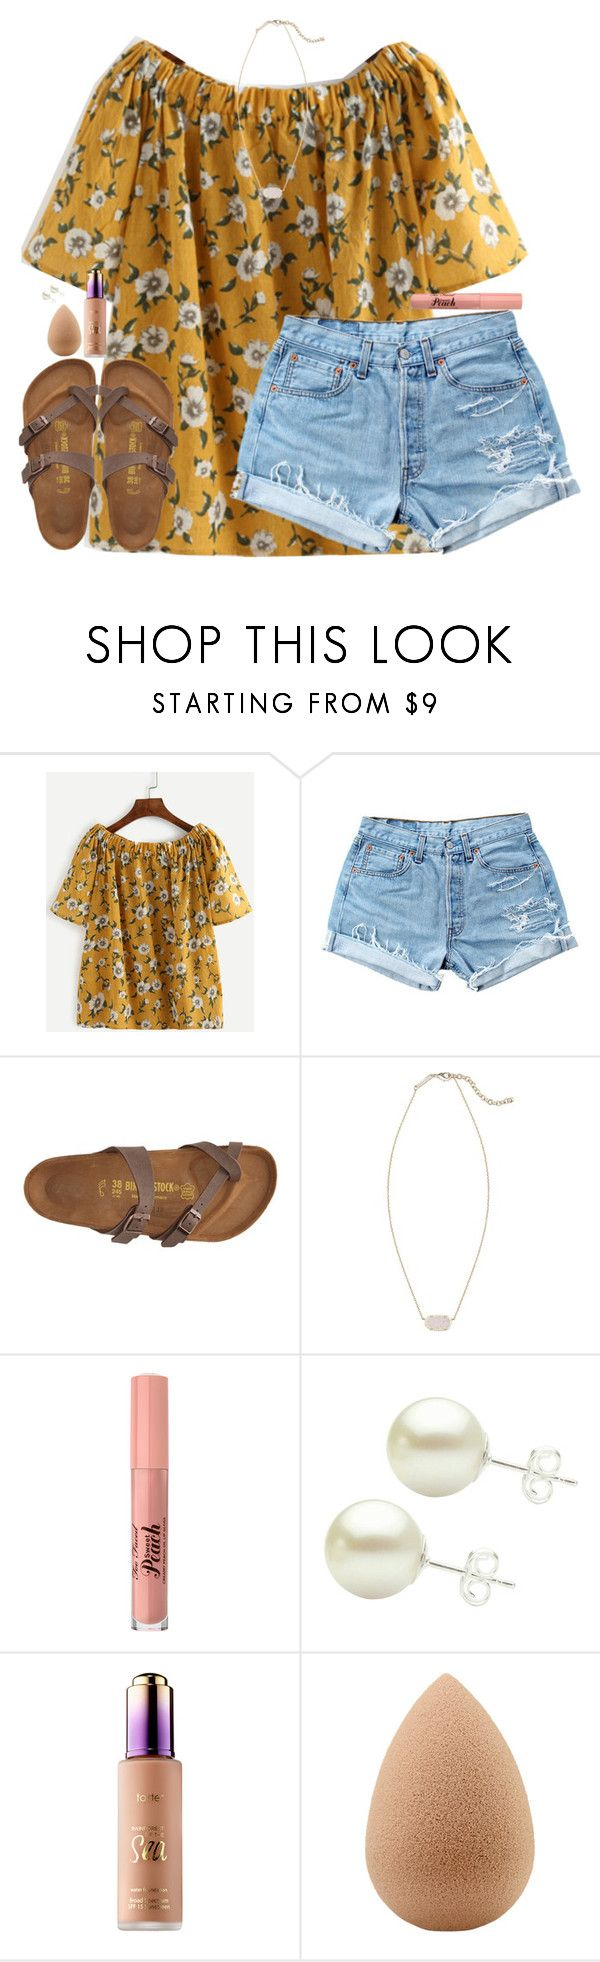 """""""Untitled #1817"""" by southernstruttin ❤ liked on Polyvore featuring Levi's, Birkenstock, Kendra Scott and beautyblender"""